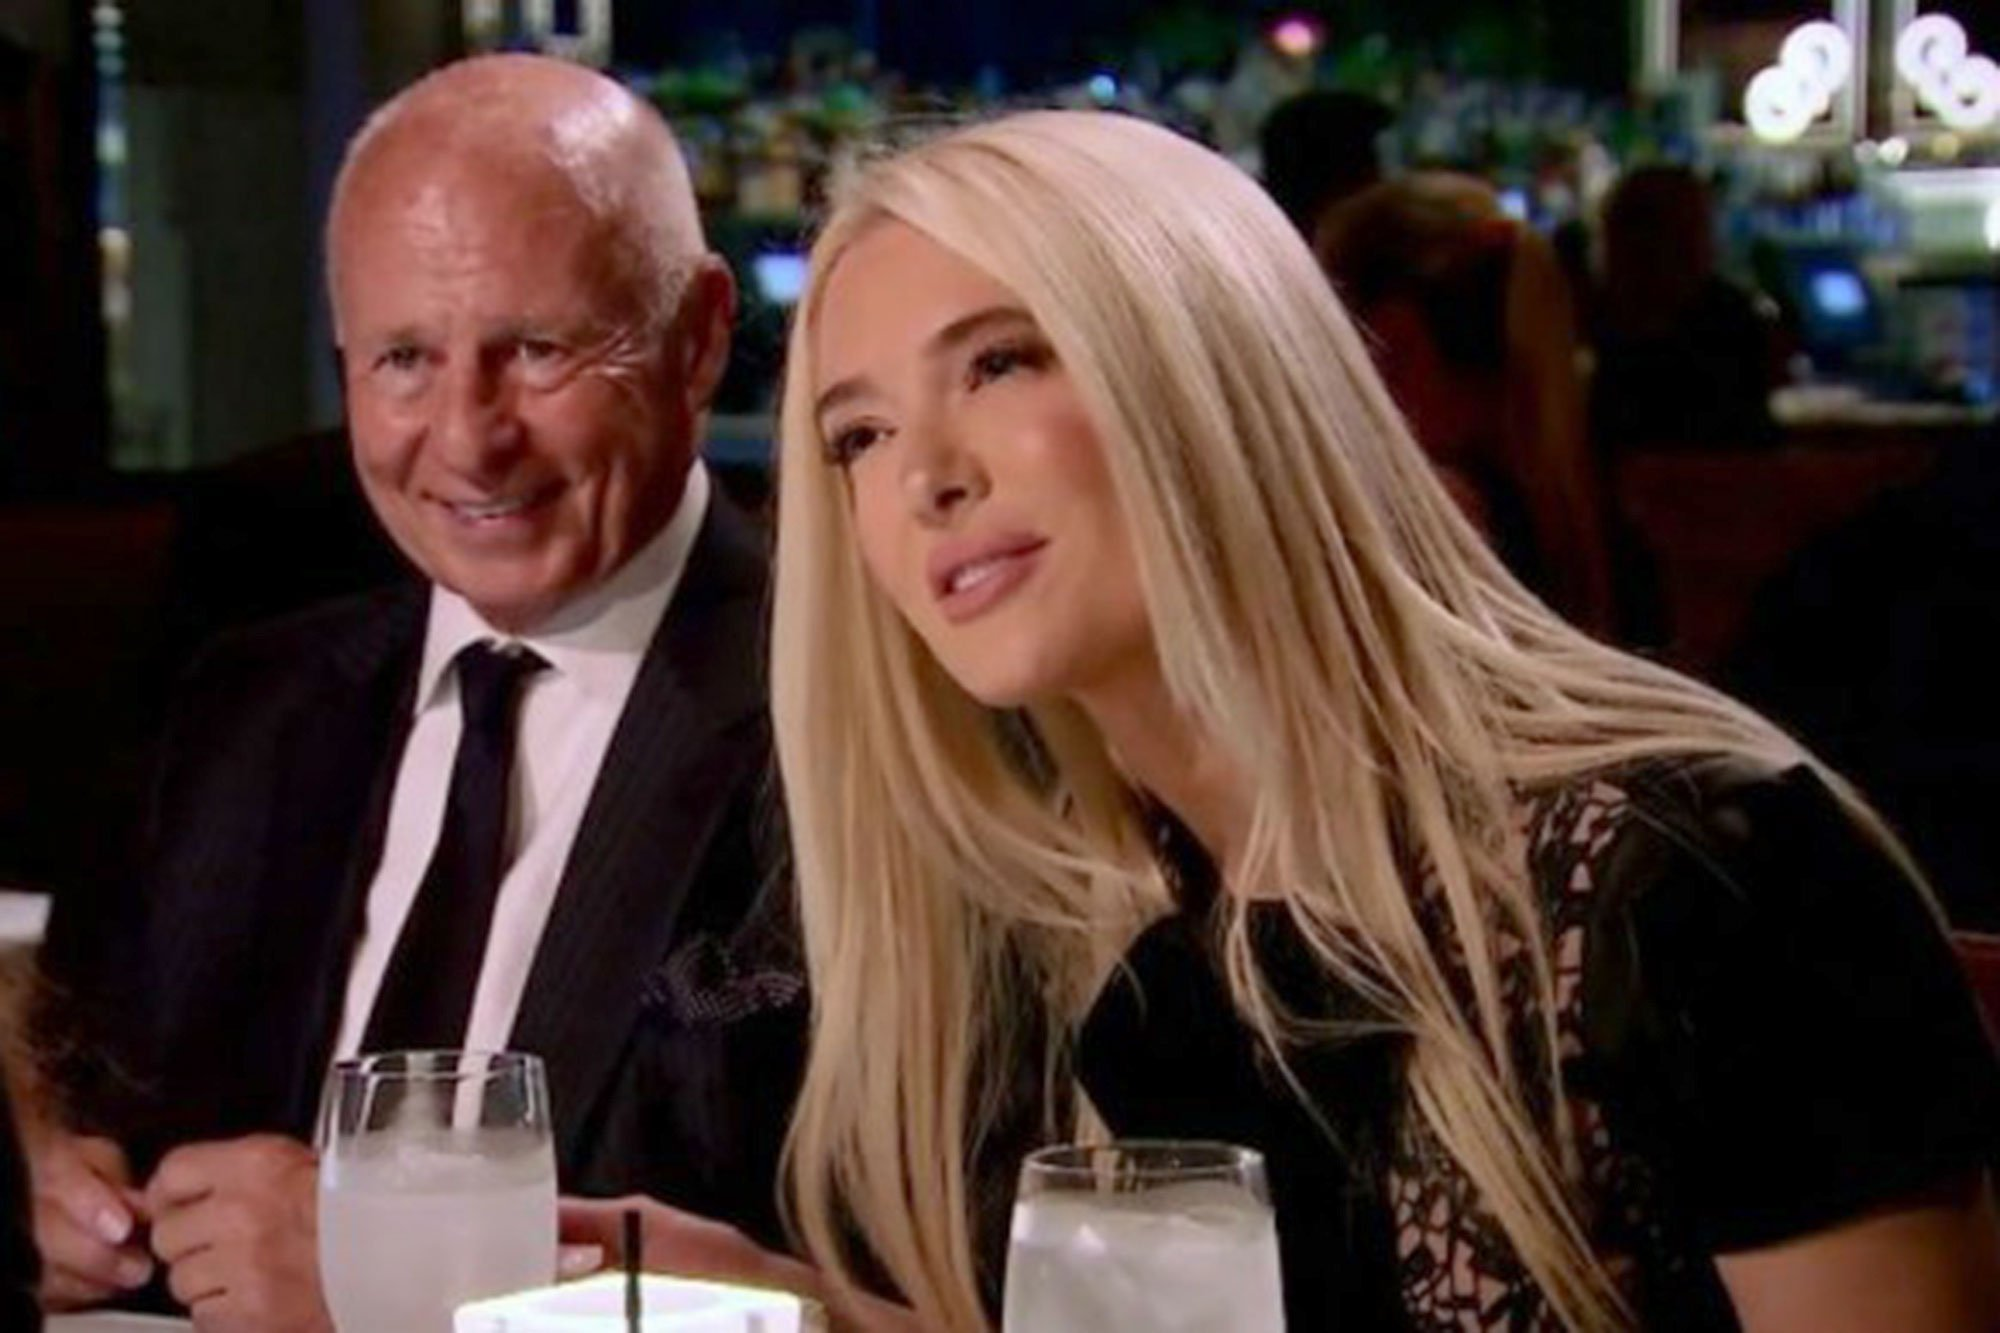 Erika Jayne And Tom Girardi Split Sparks Marriage Trouble Rumors Dating Back Years — Couple Did Not Have Prenup